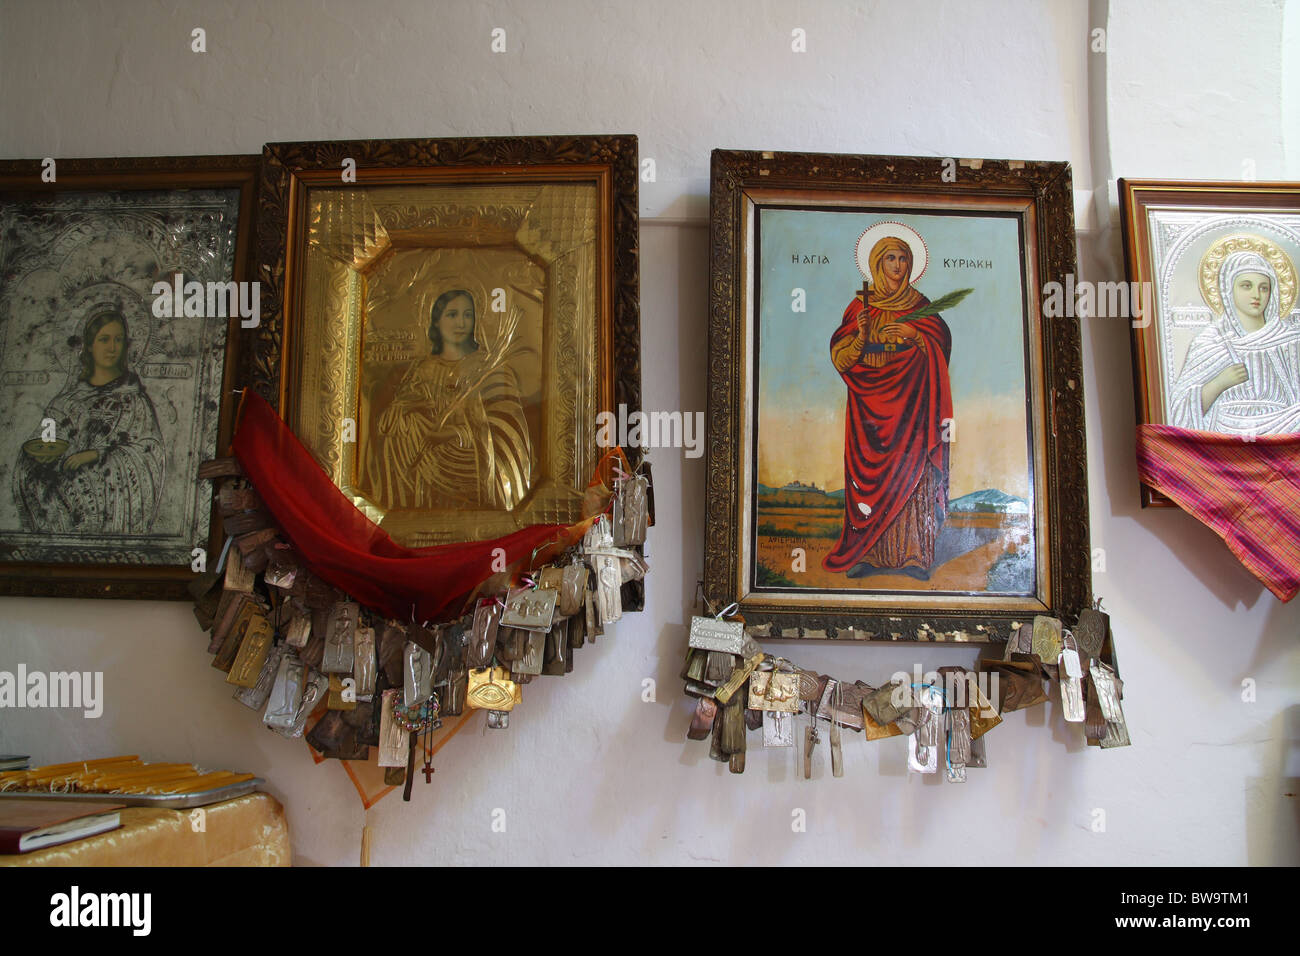 Inside an Orthodox church in Karpathos Stock Photo